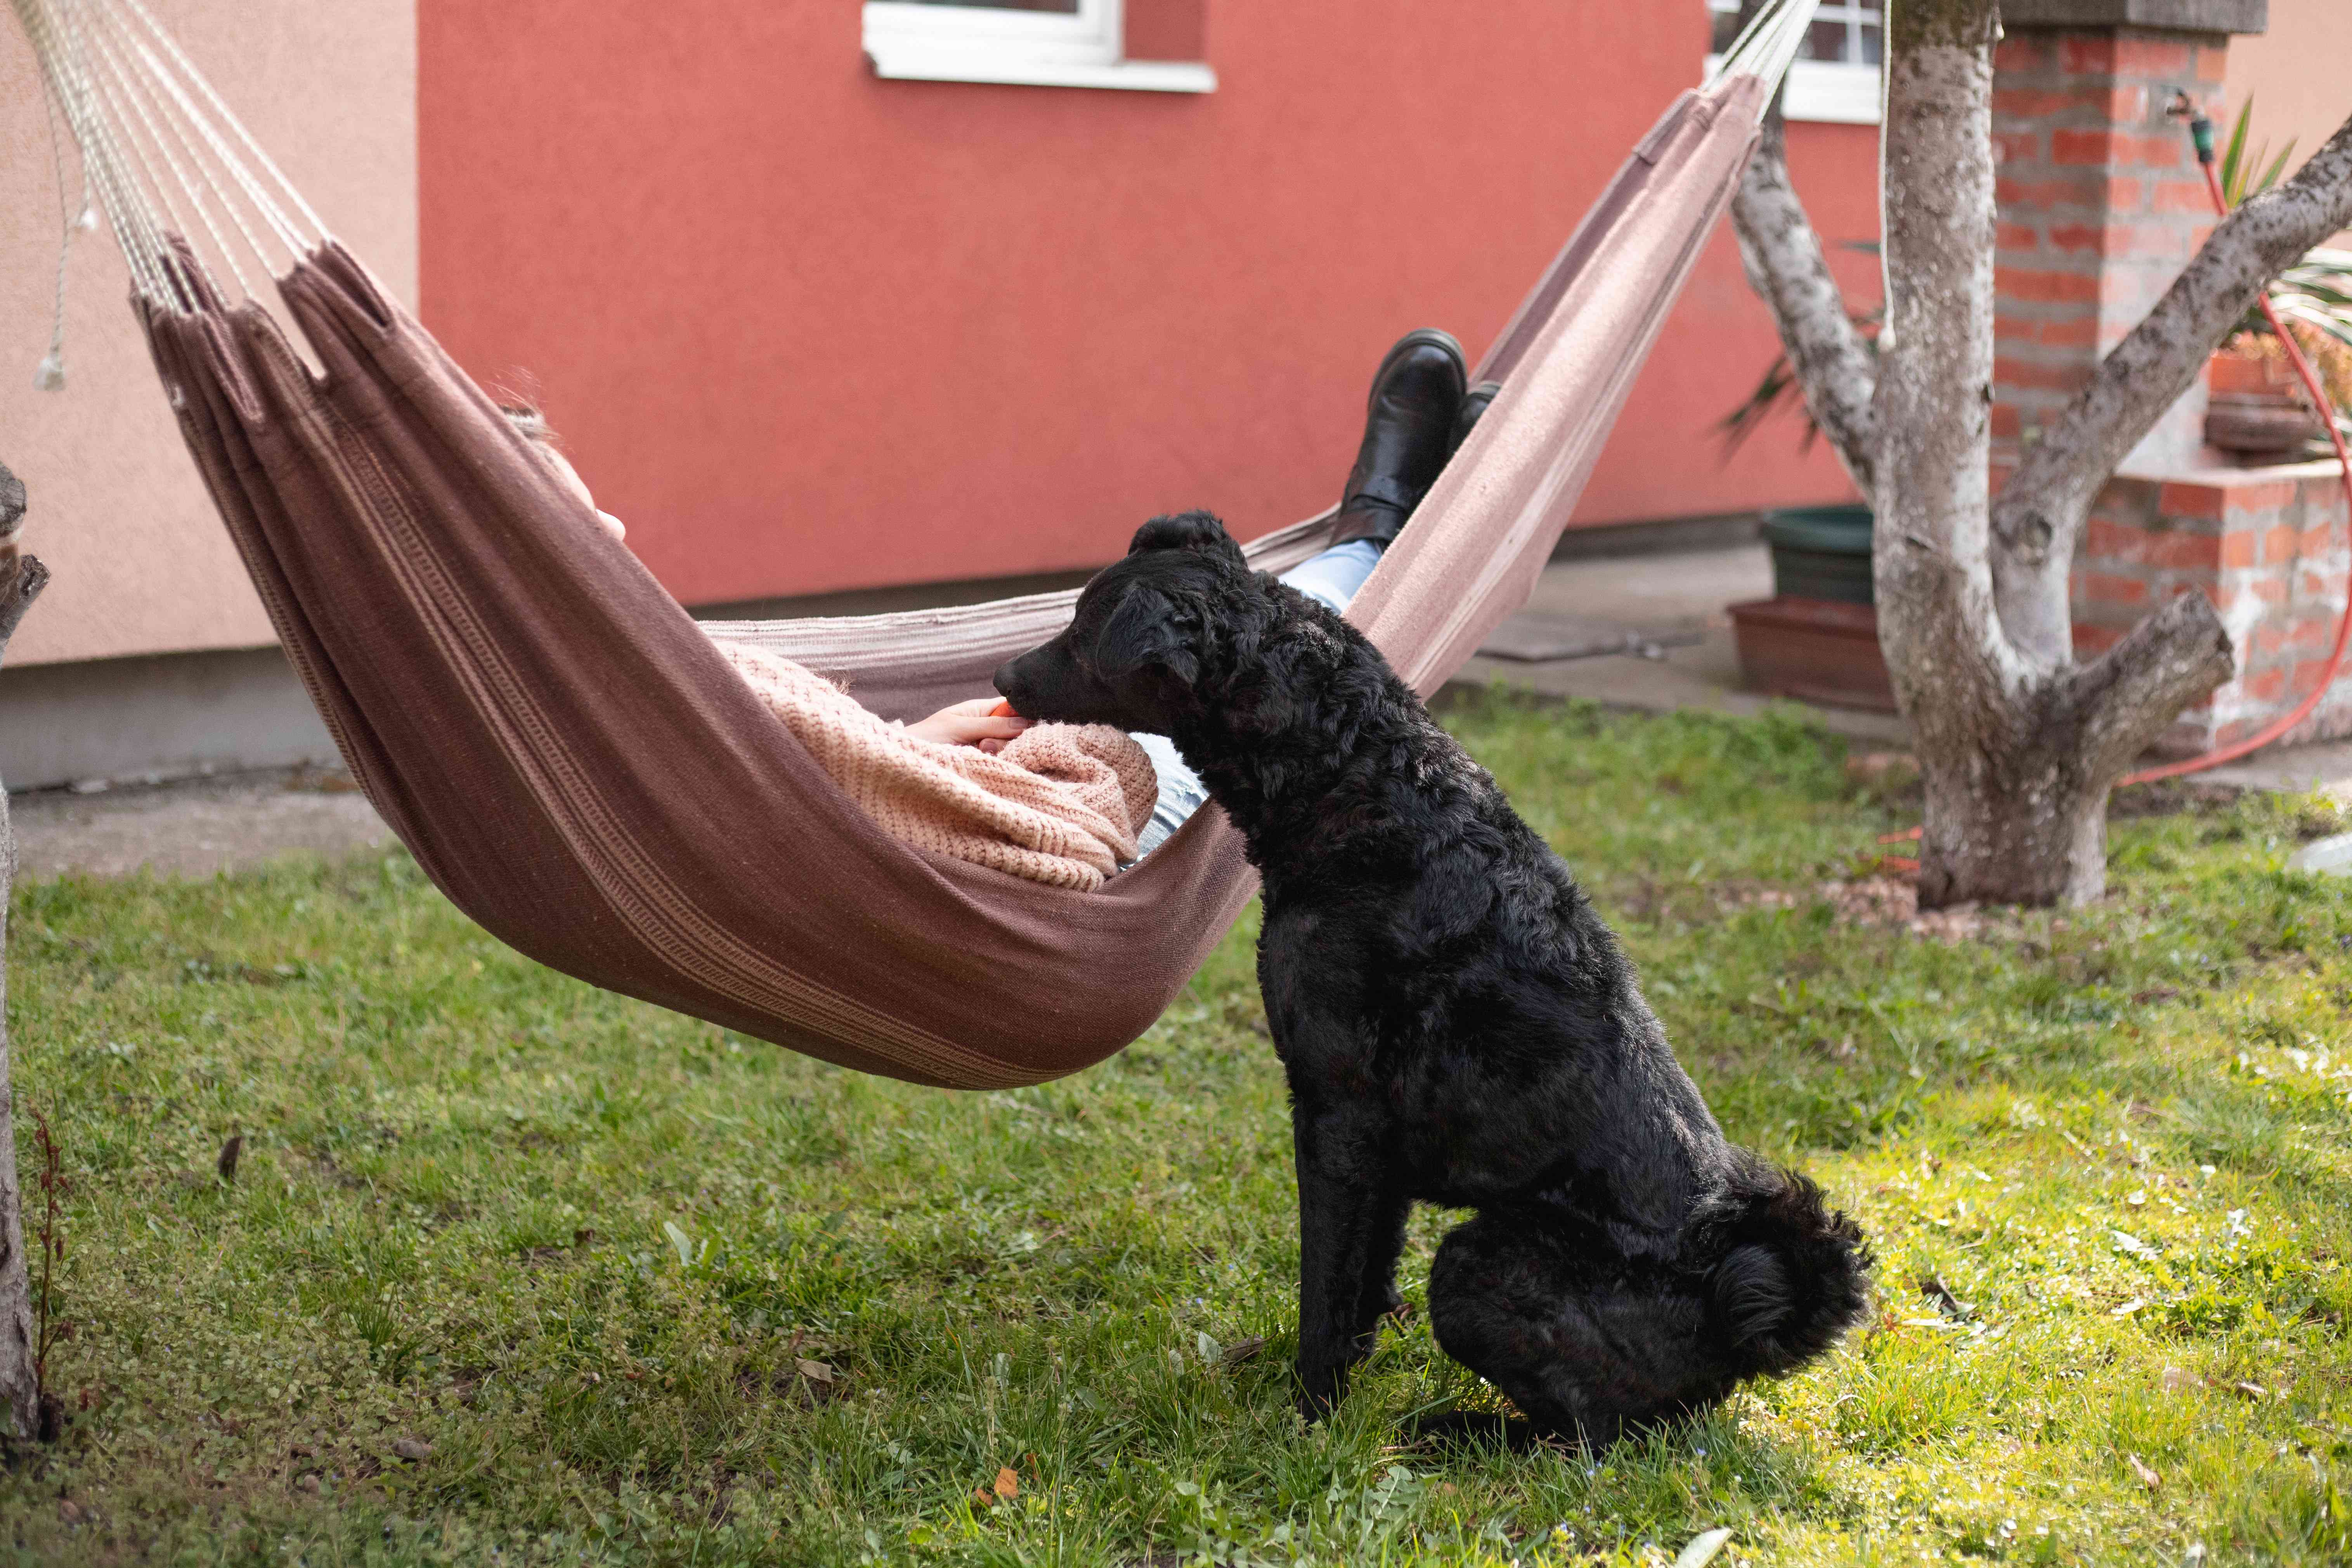 person swings in hammock while black dog sits patiently next to them